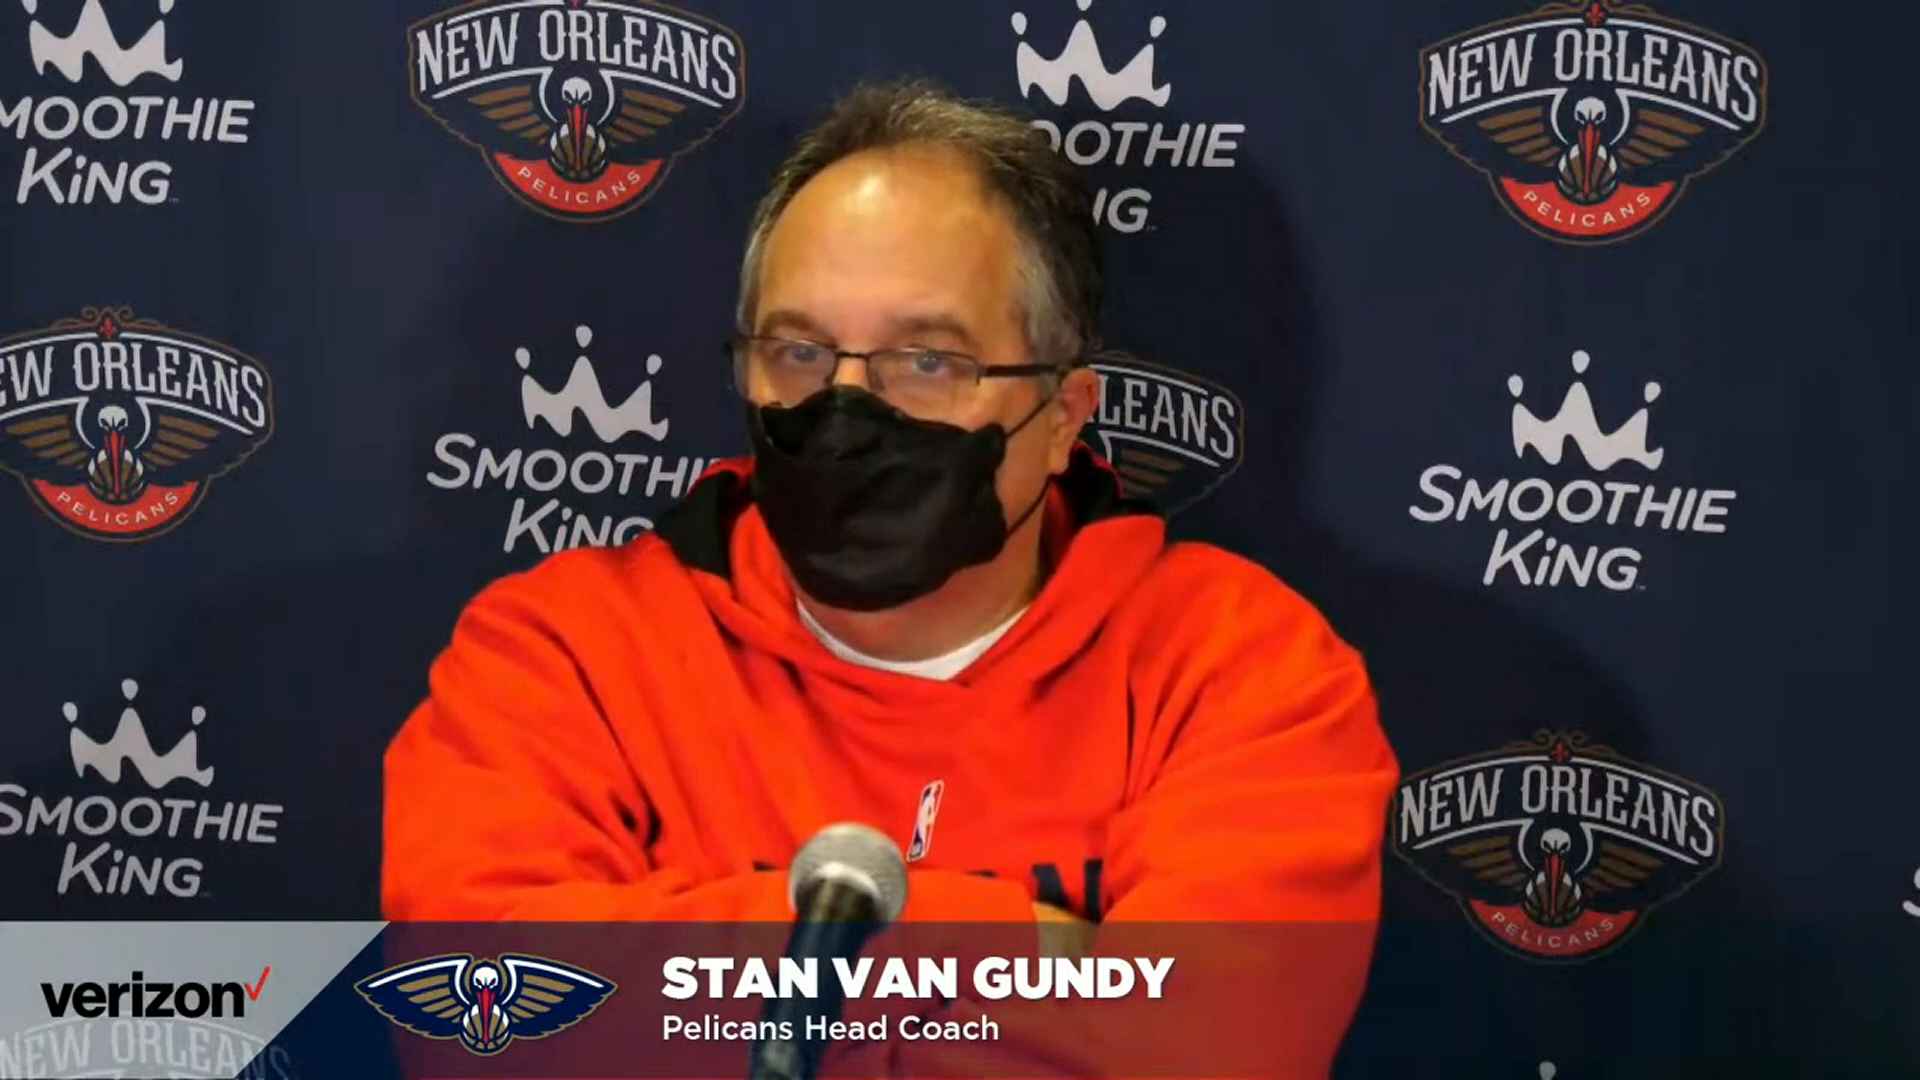 Pelicans-Knicks Postgame Interview: Stan Van Gundy 4-18-21